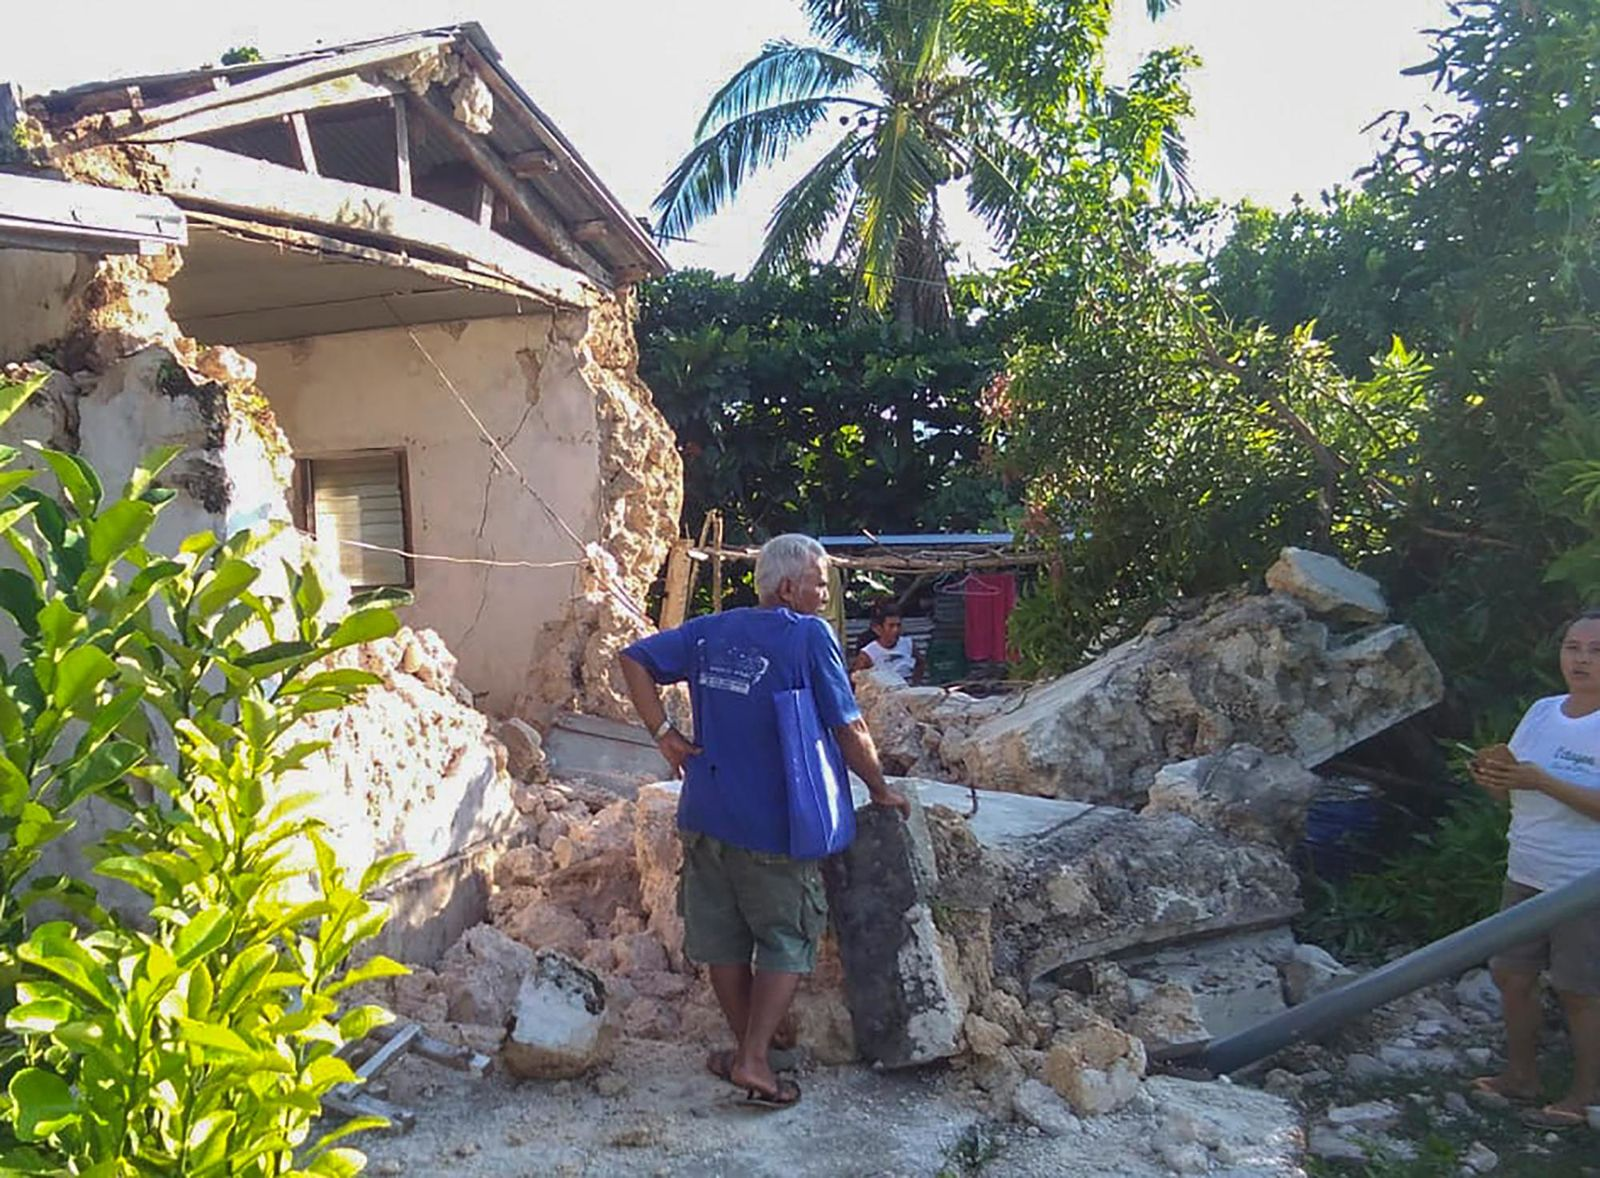 A resident looks at damaged houses in Itbayat town, Batanes islands, northern Philippines on Saturday, July 27, 2019. Two strong earthquakes hours apart struck a group of sparsely populated islands in the Luzon Strait in the northern Philippines early Saturday. (AP Photo/Agnes Salengua Nico)